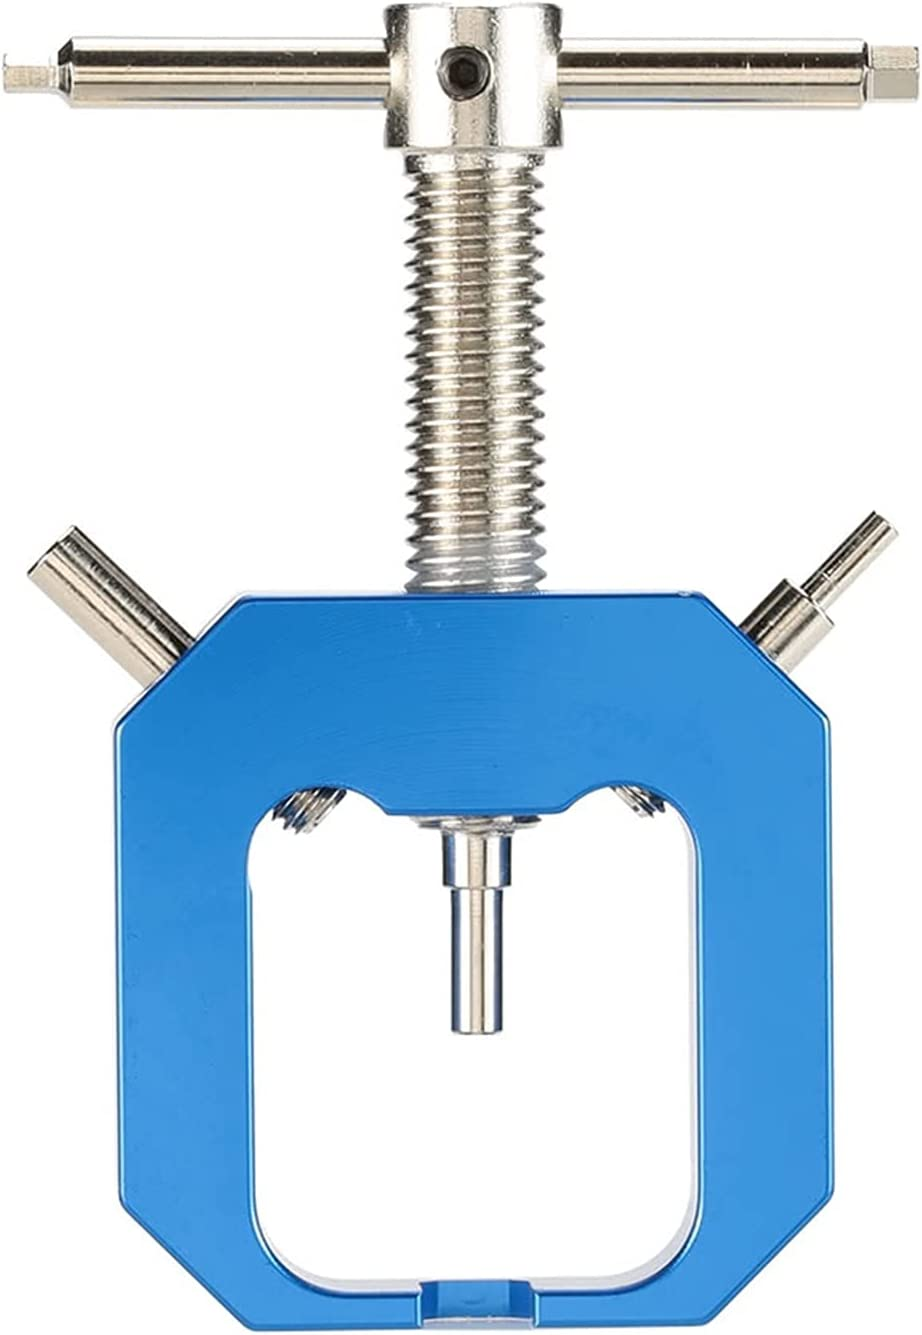 YEZIQ Ranking TOP10 Hydraulic Tool- Blue Gear Du Puller All stores are sold Bearing Tool Extractor